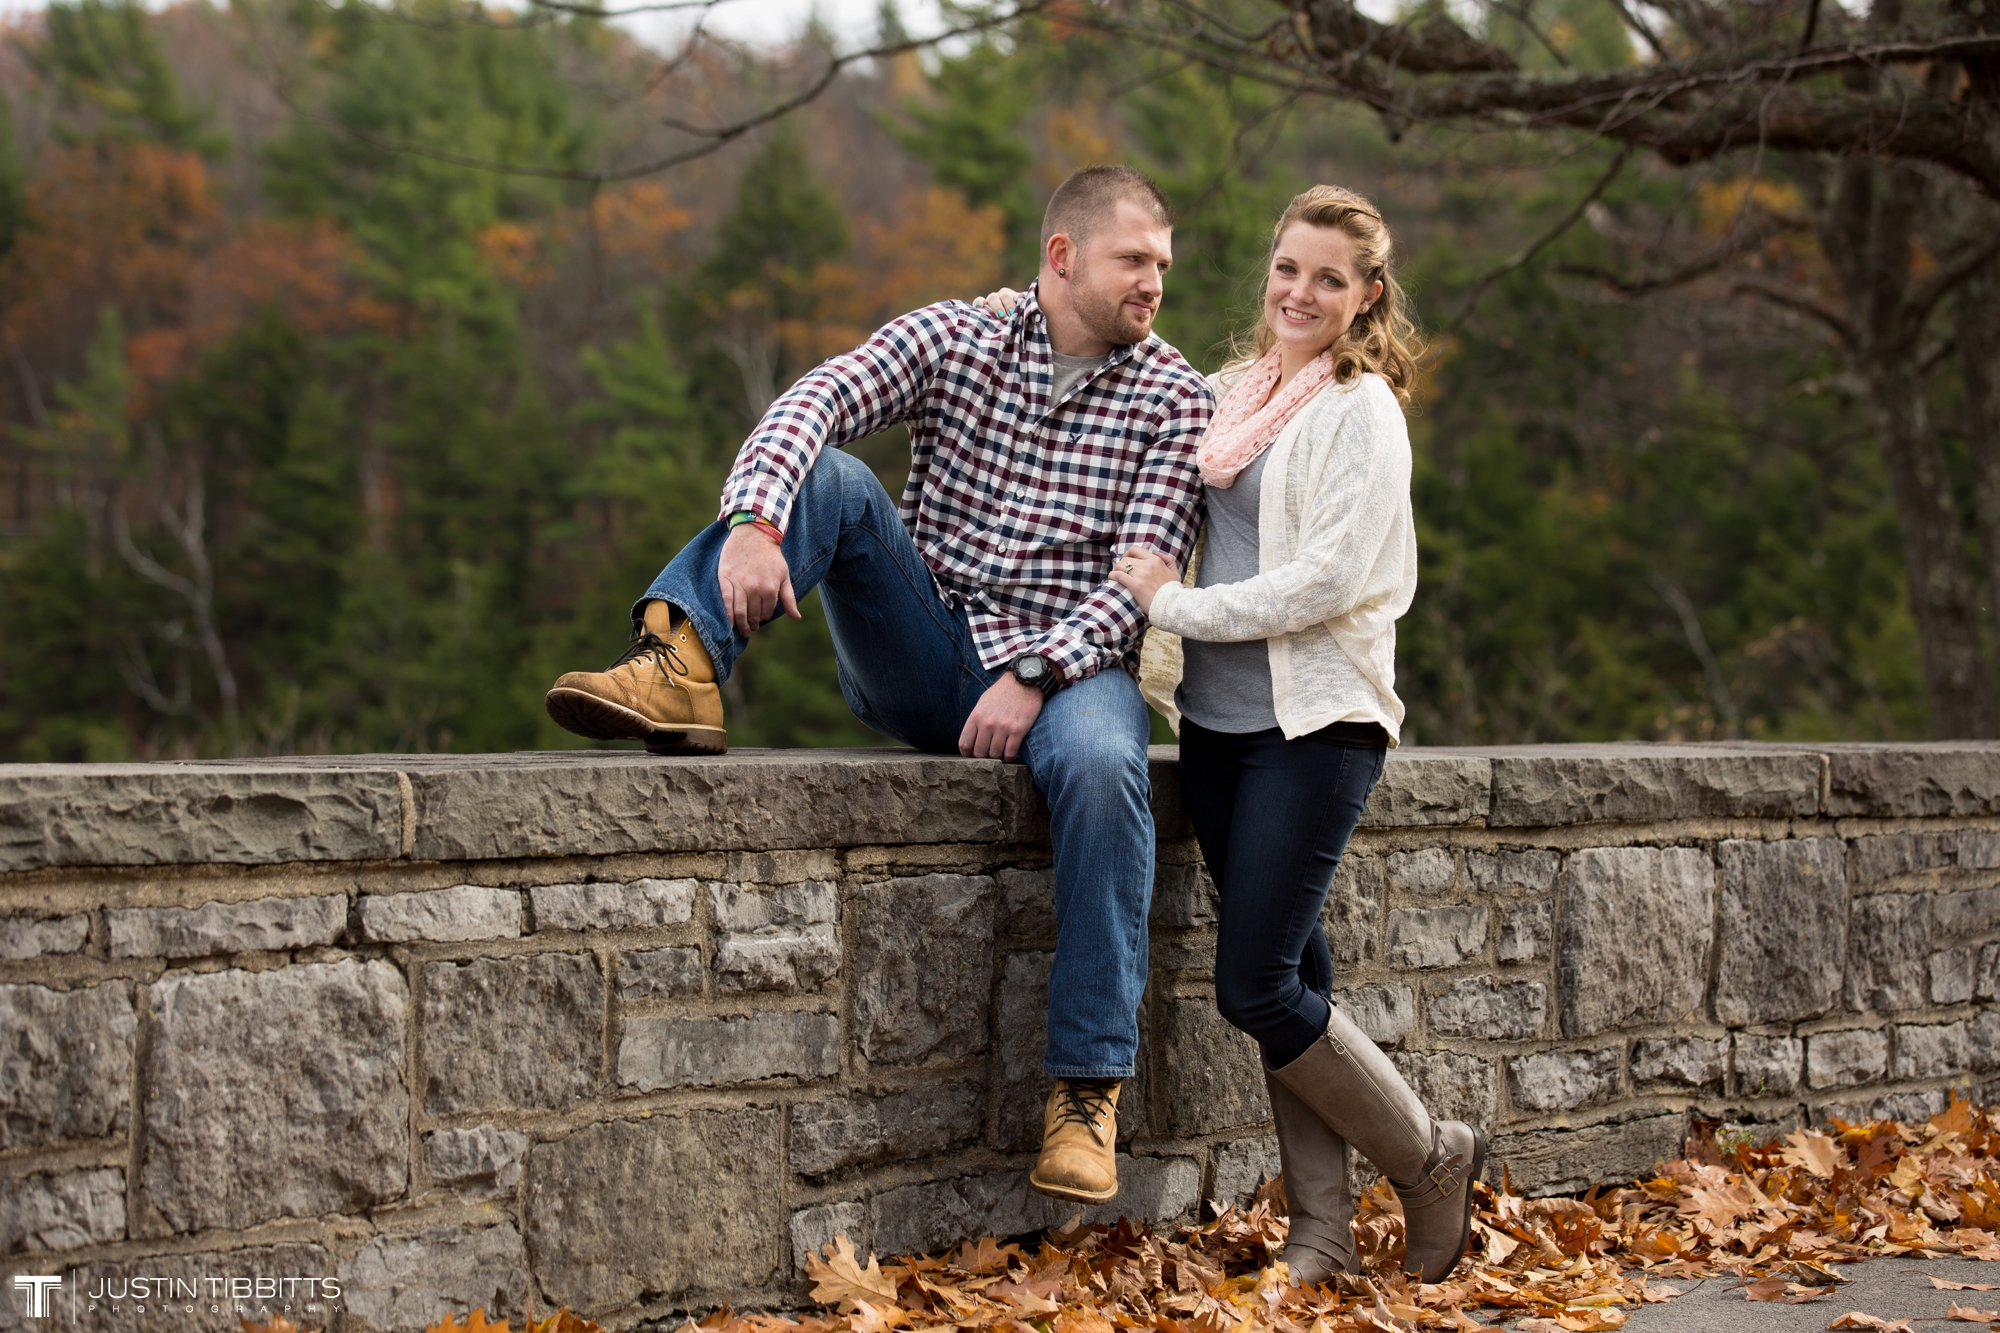 Justin Tibbitts Photography Ashlee and Steves Thatcher Park, New York Engagement Shoot-9